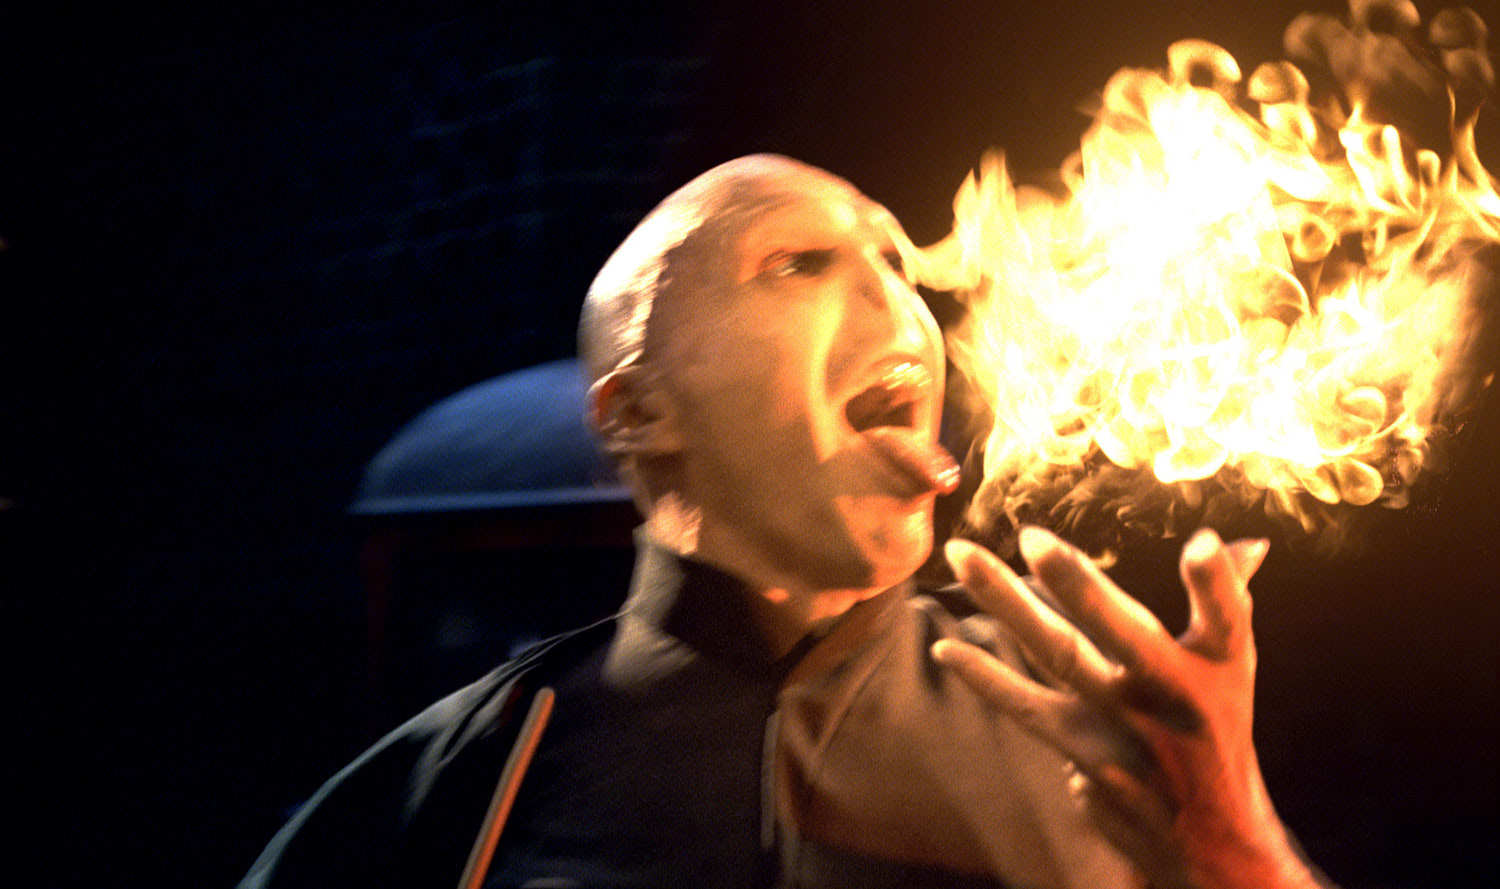 Voldemort breathes fire